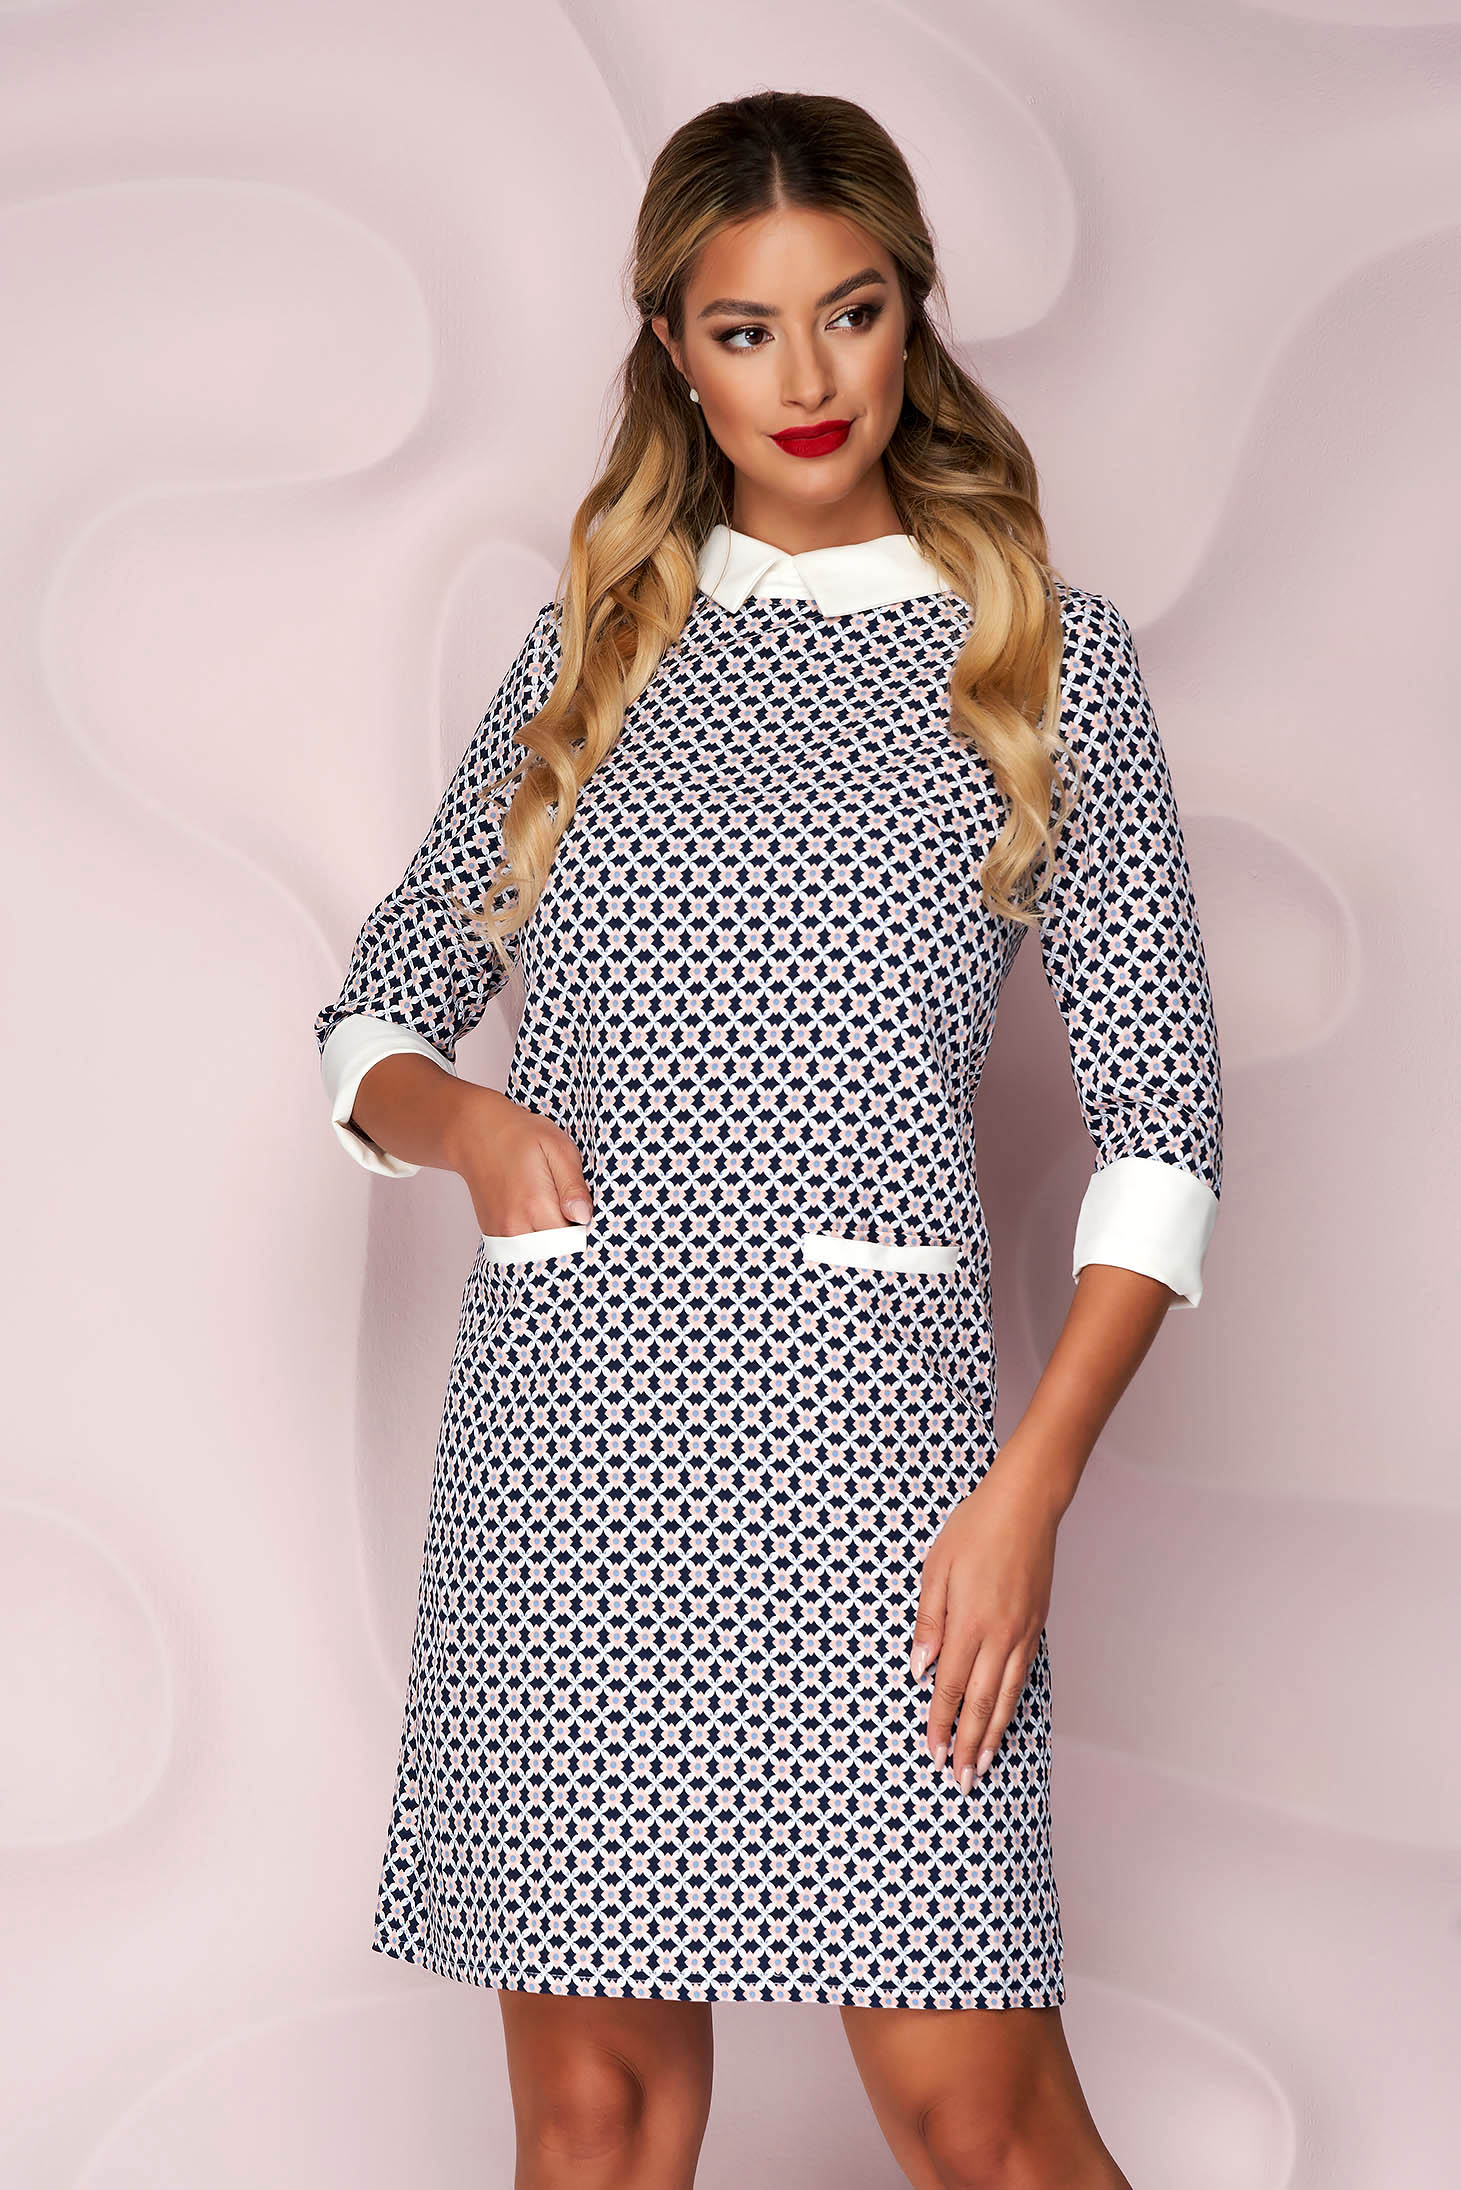 Dress thin fabric casual straight with front pockets nonelastic fabric